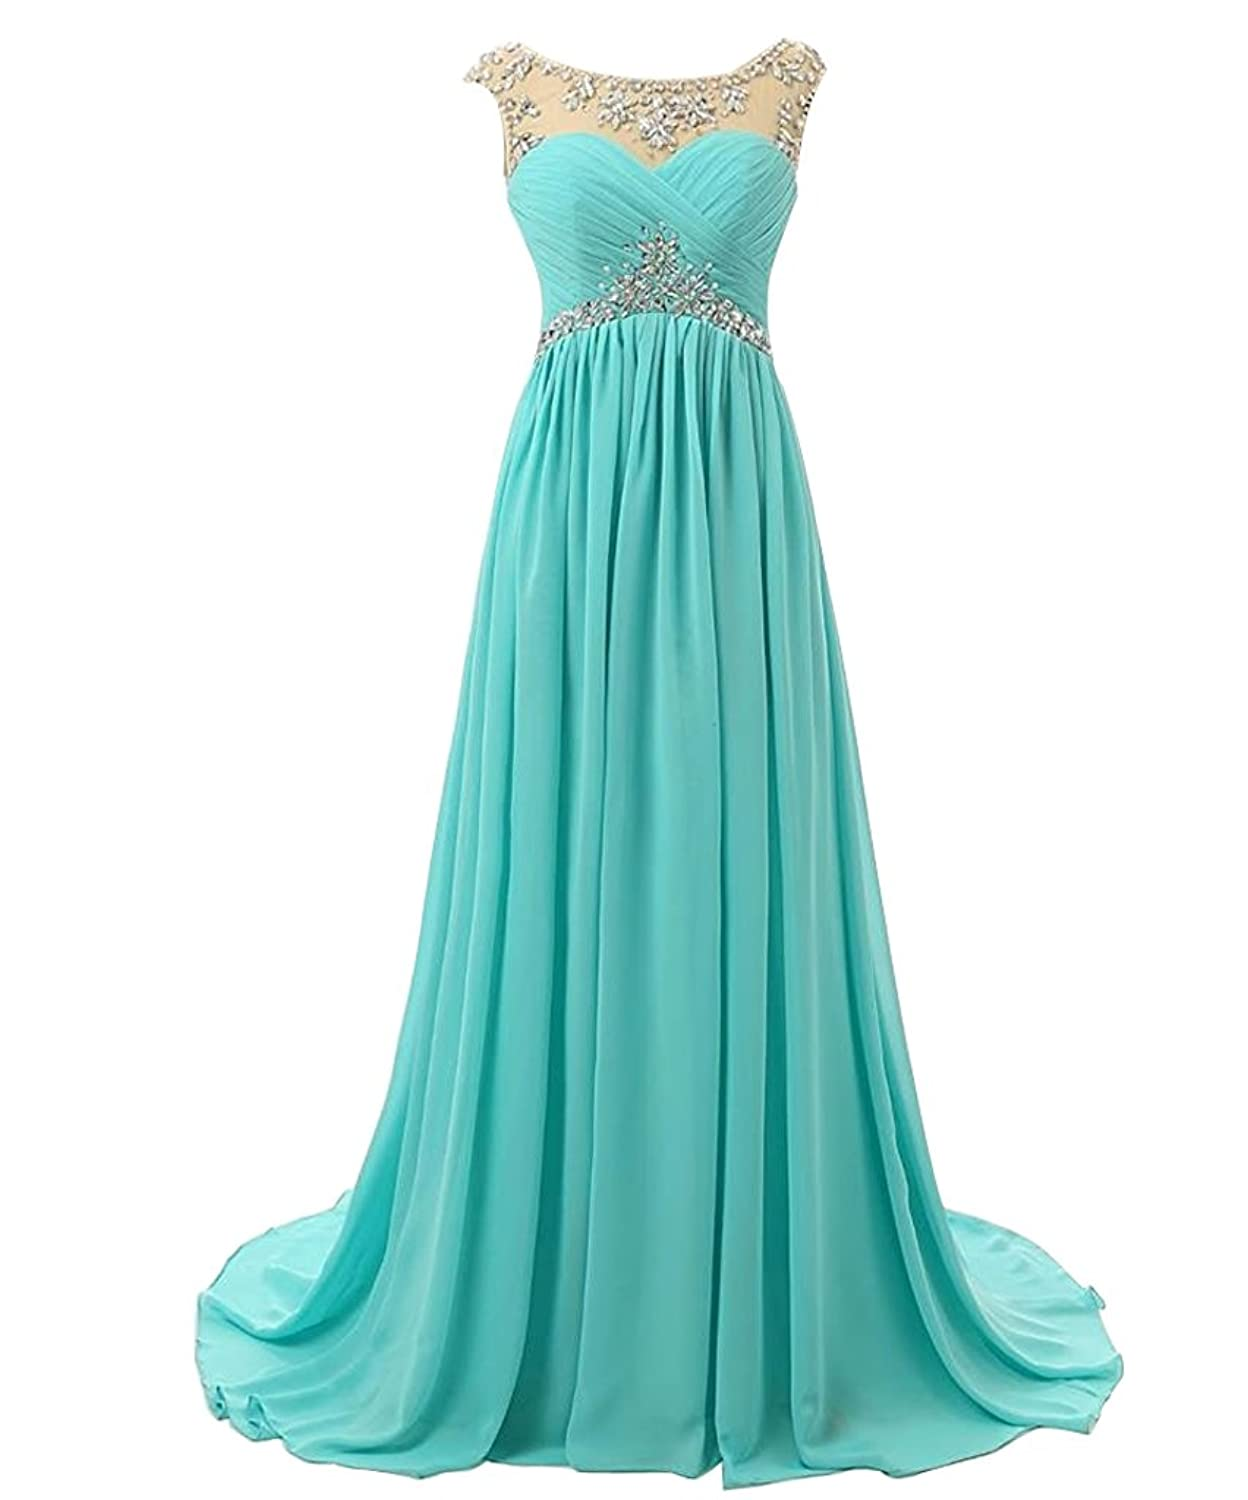 Amazon.com: Anlin Long Strapless Ruched Chiffon Prom Evening Dresses ...